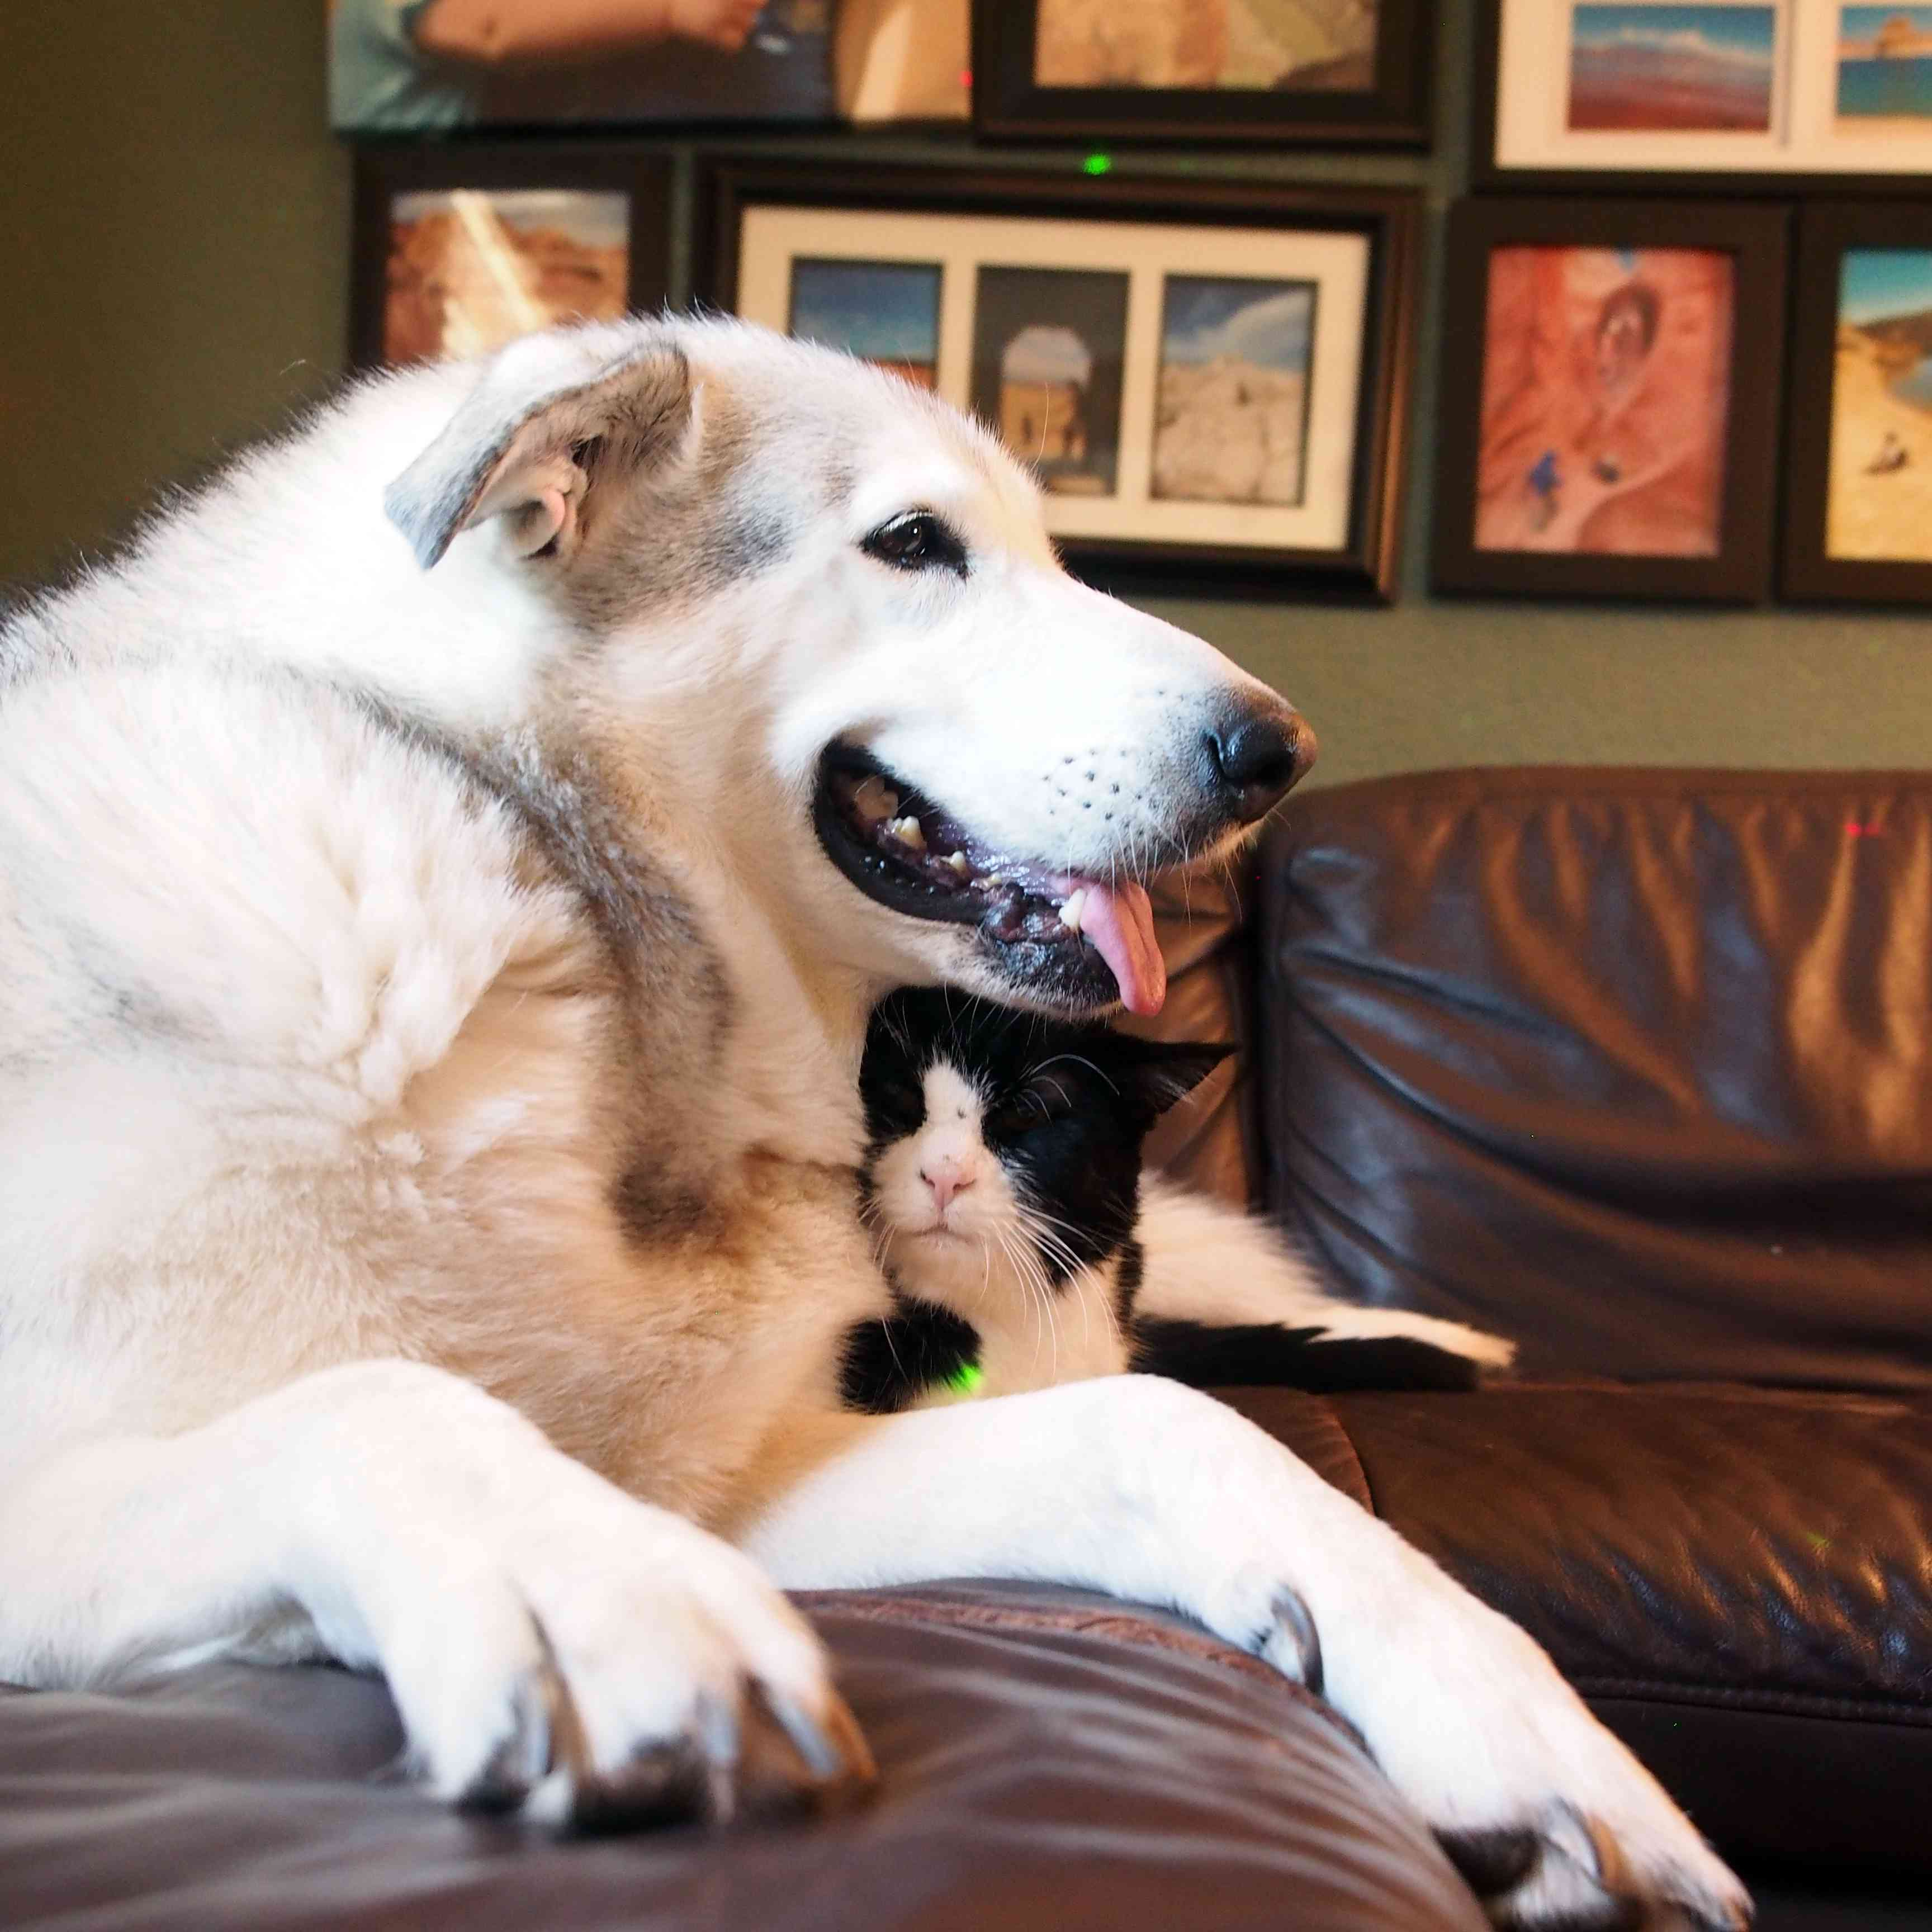 Flora the dog cuddles up with Dexter the cat.